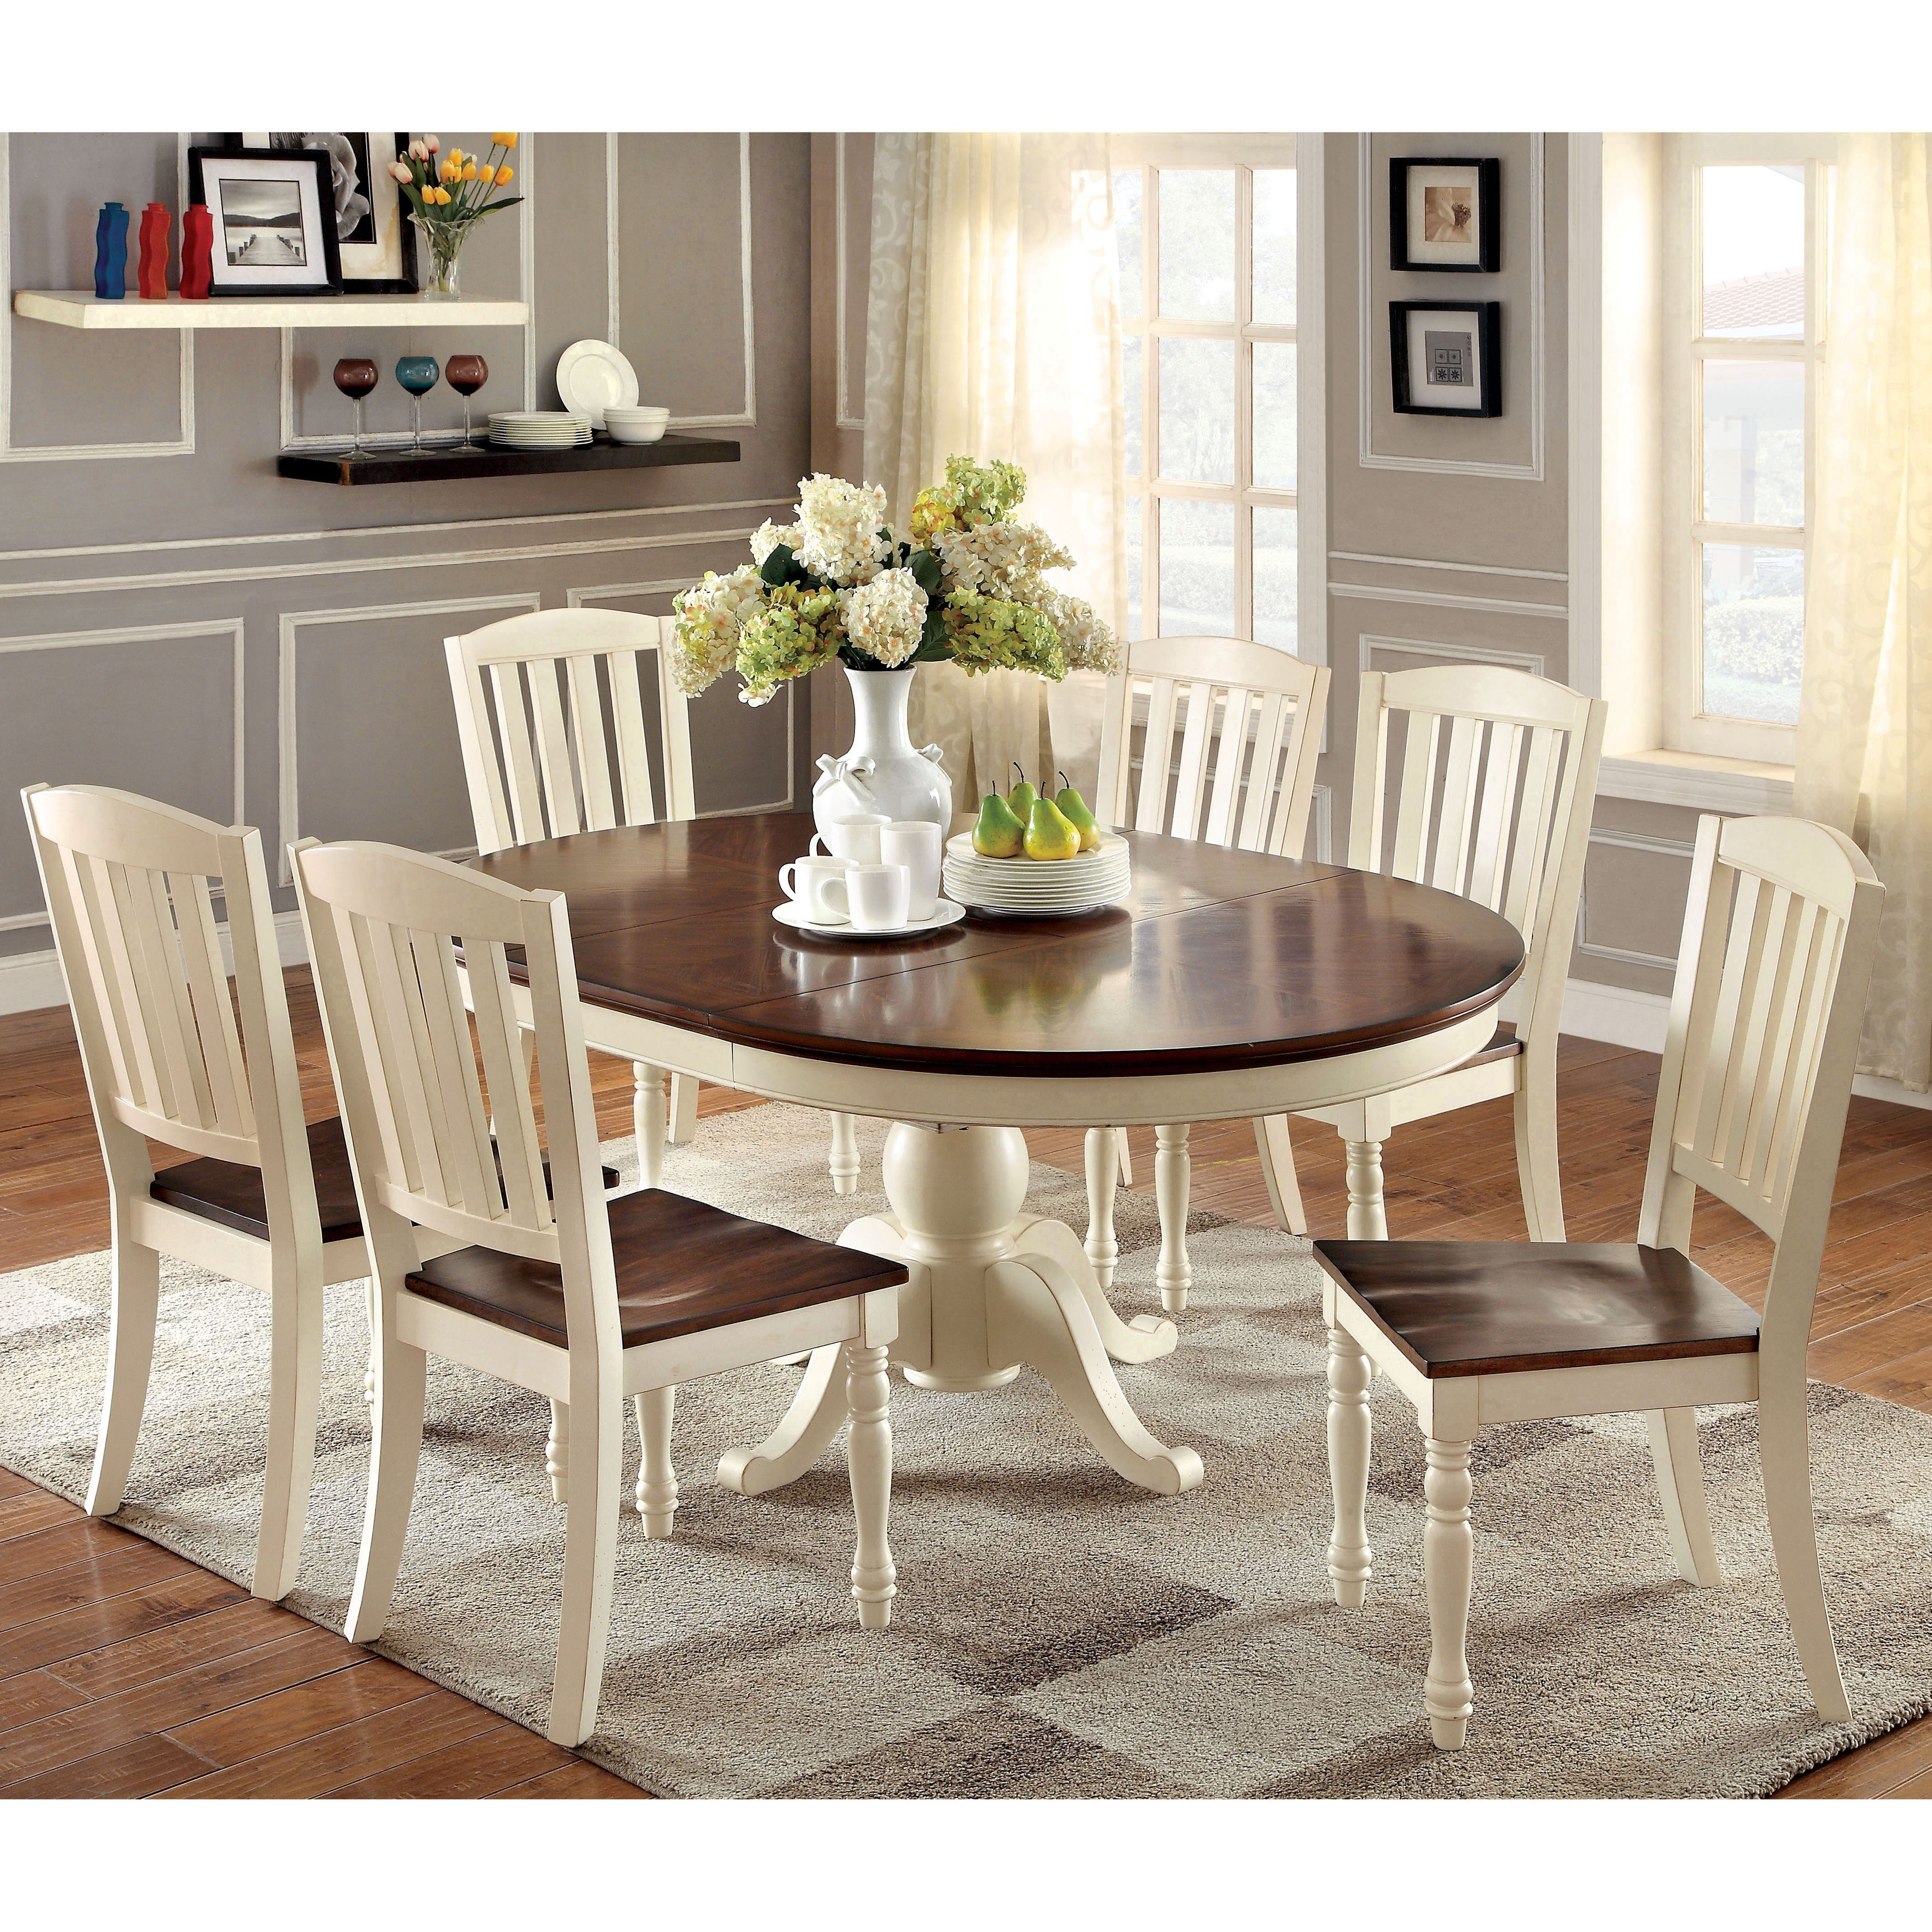 Fashionable Dining Room Inspo  June, 2018